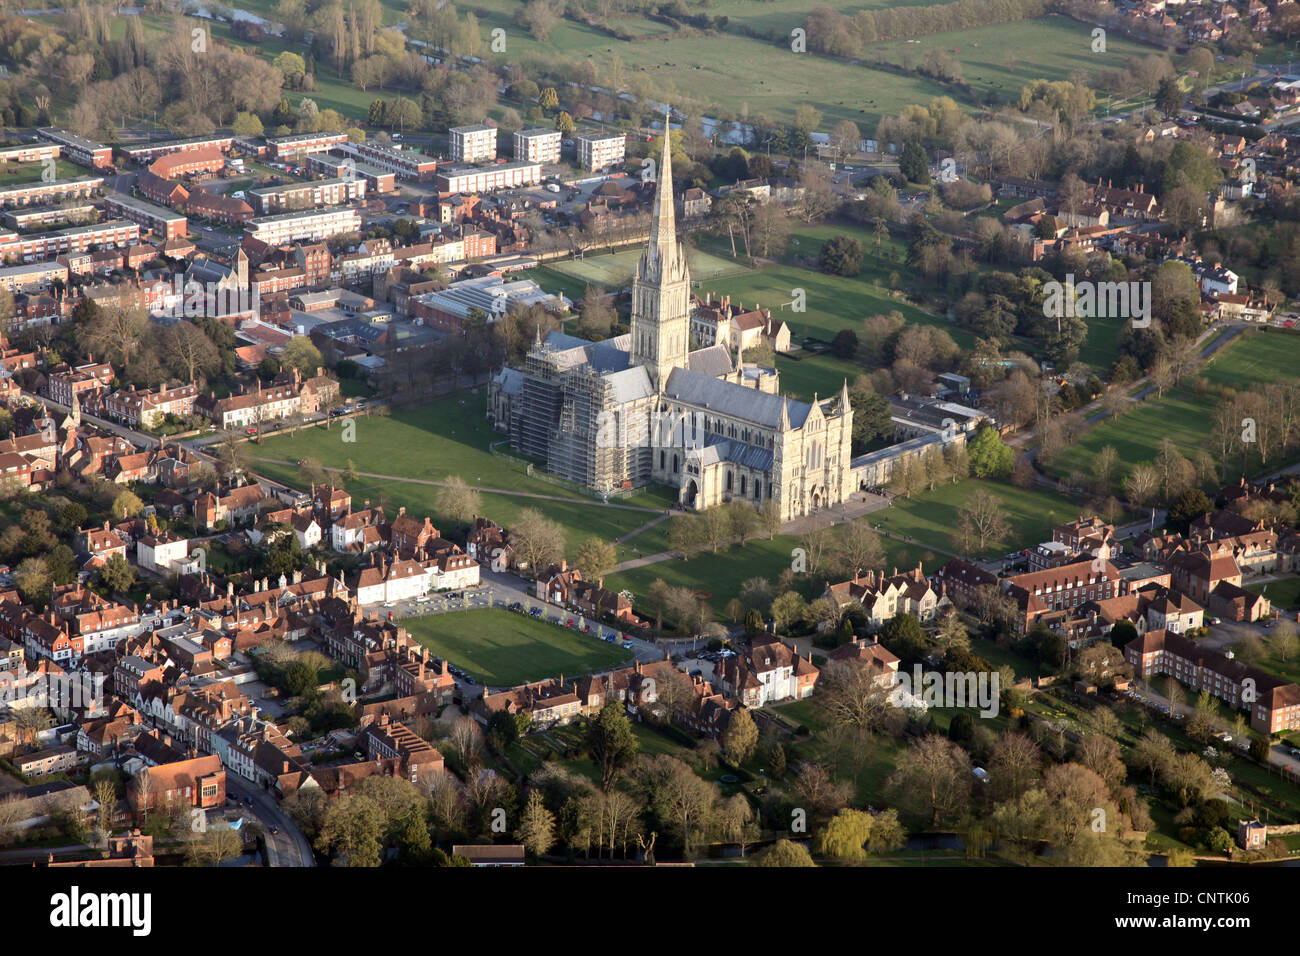 Salisbury from the air, including Salisbury Cathedral, England. Photographed from a hot air balloon. Stock Photo